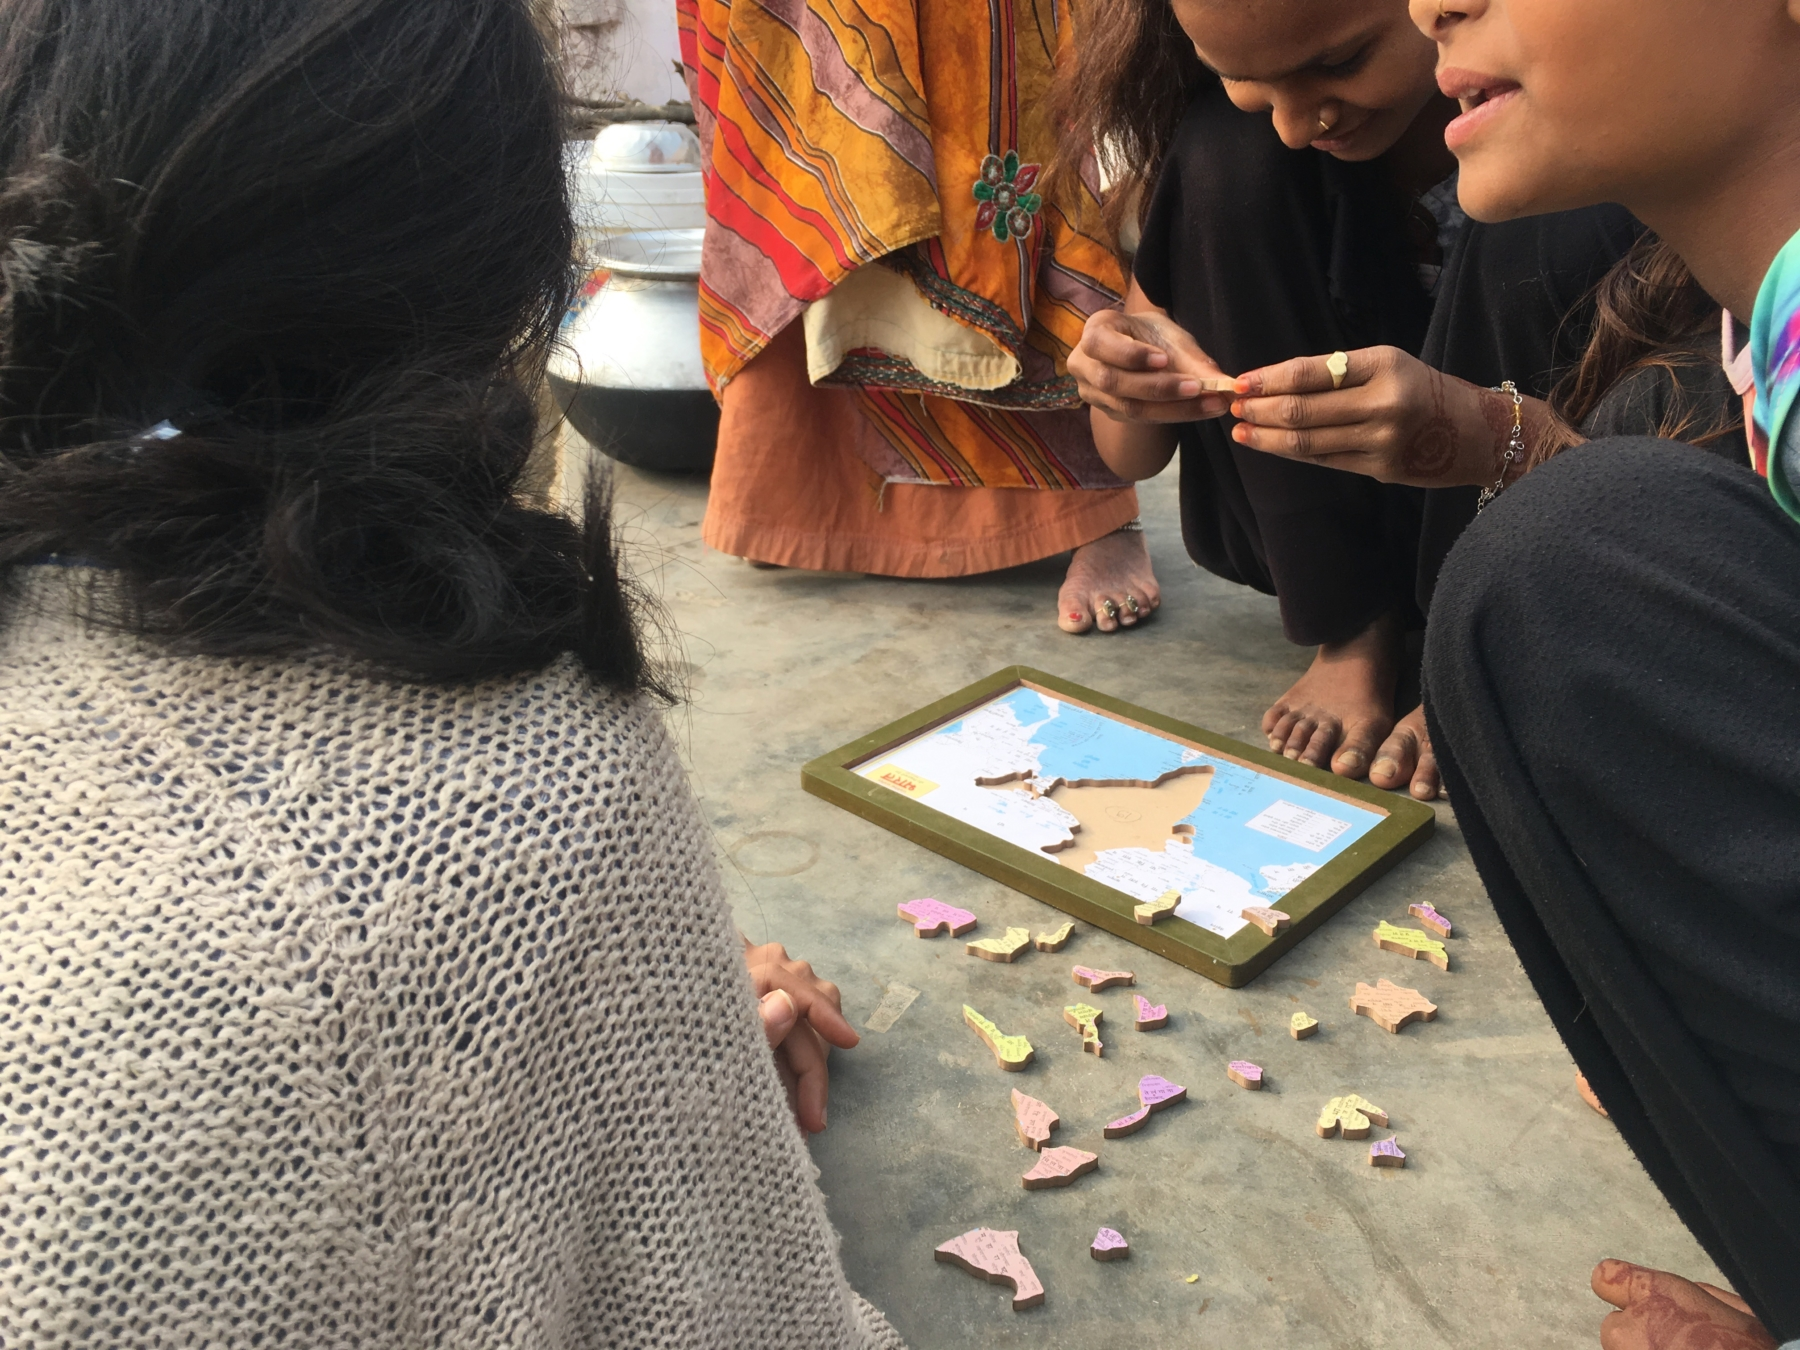 People gathered around an Indian geography puzzle